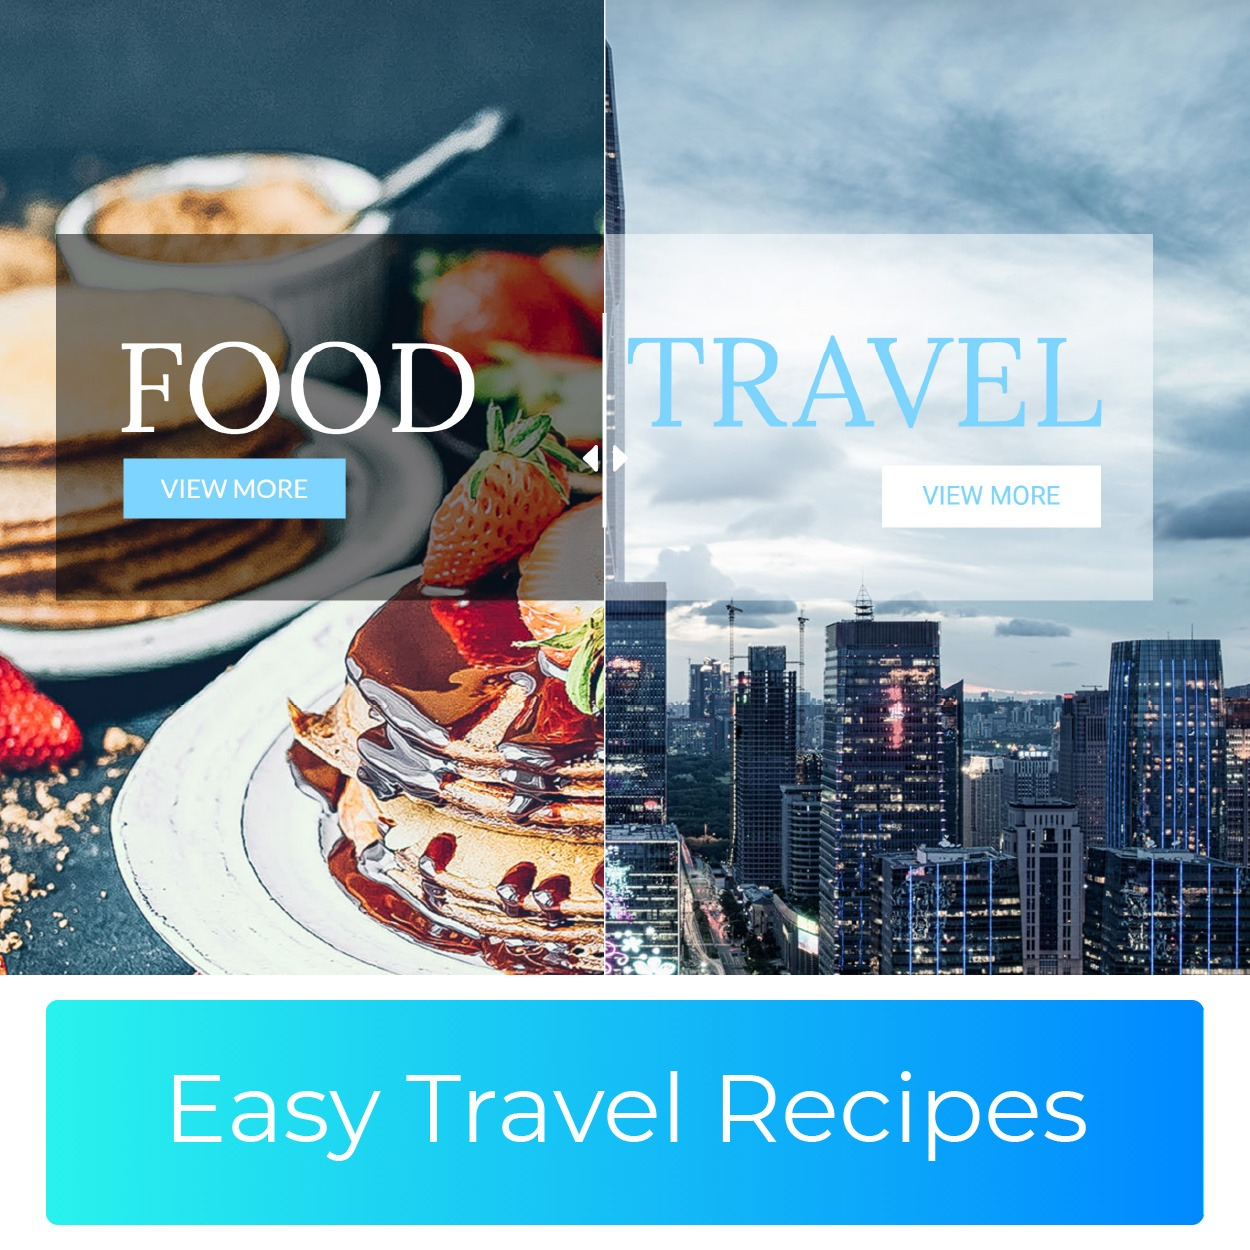 Easy Travel Recipes: One-stop Lifestyle Portal for Travel and Cooking